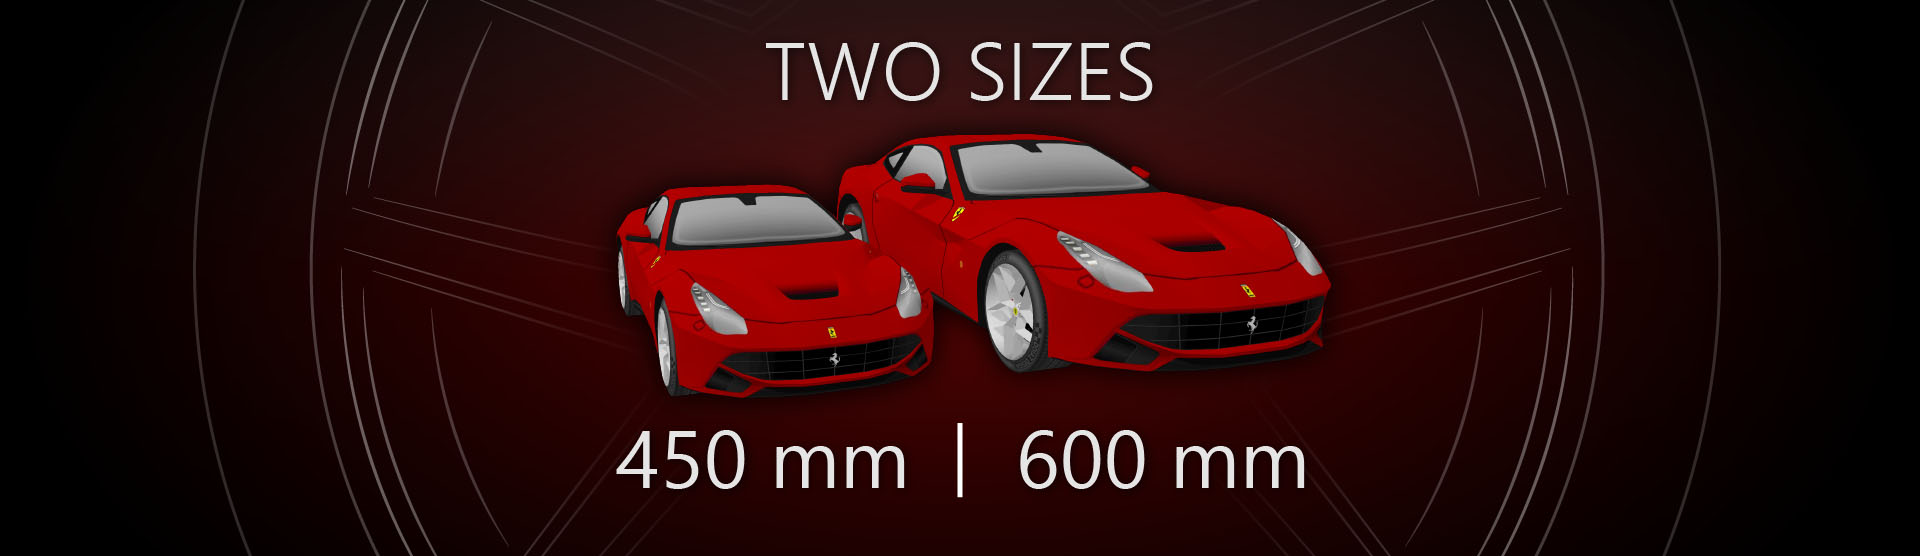 F12 Download Size